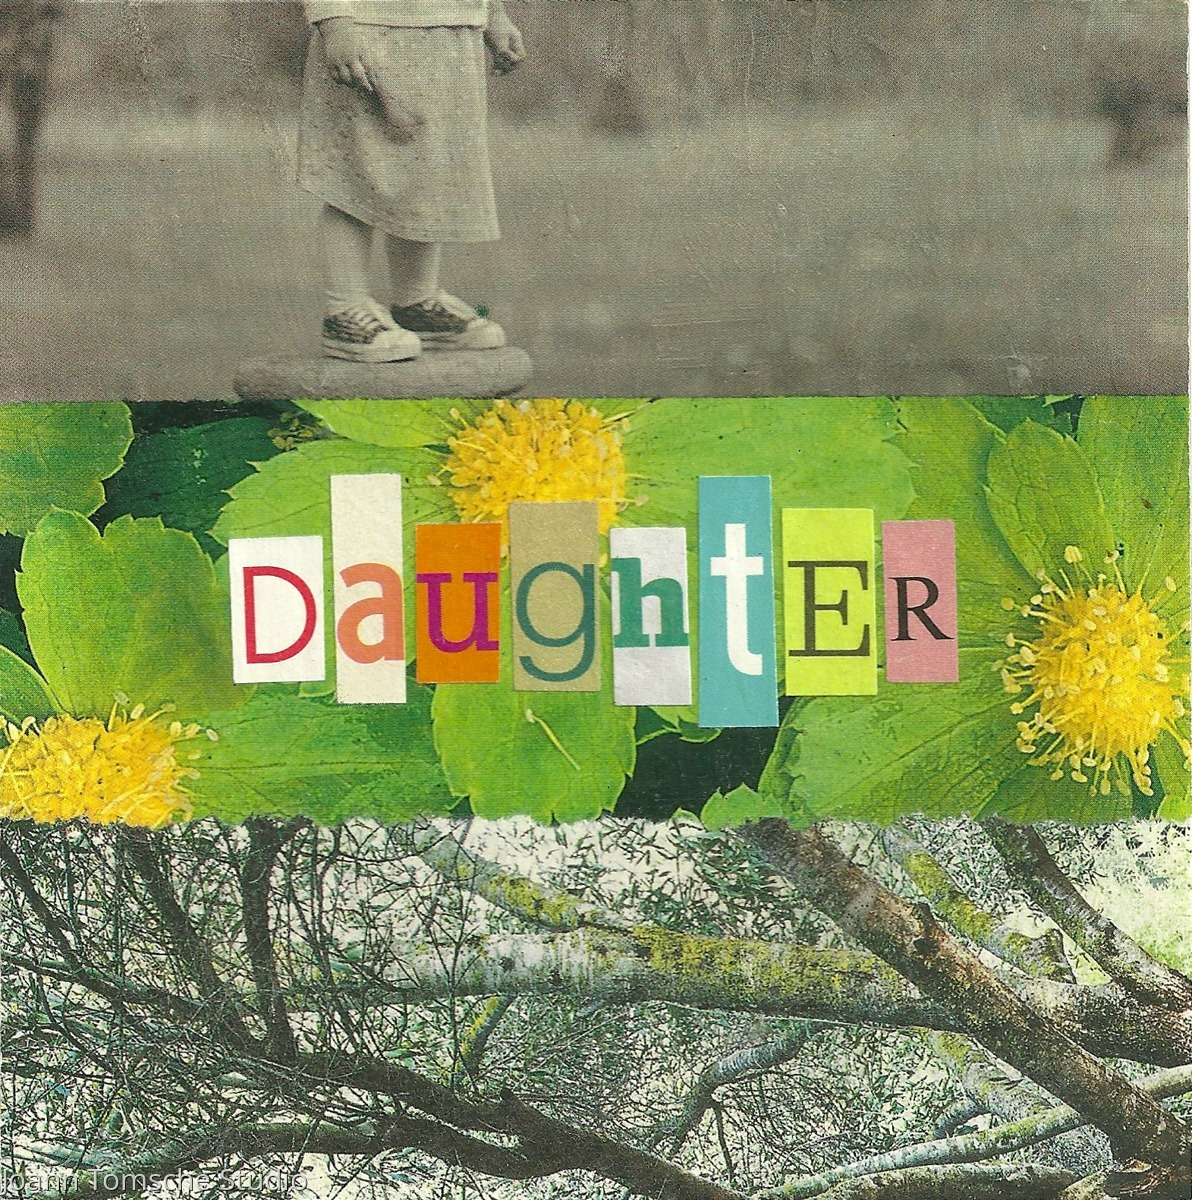 Daughter art tile (large view)